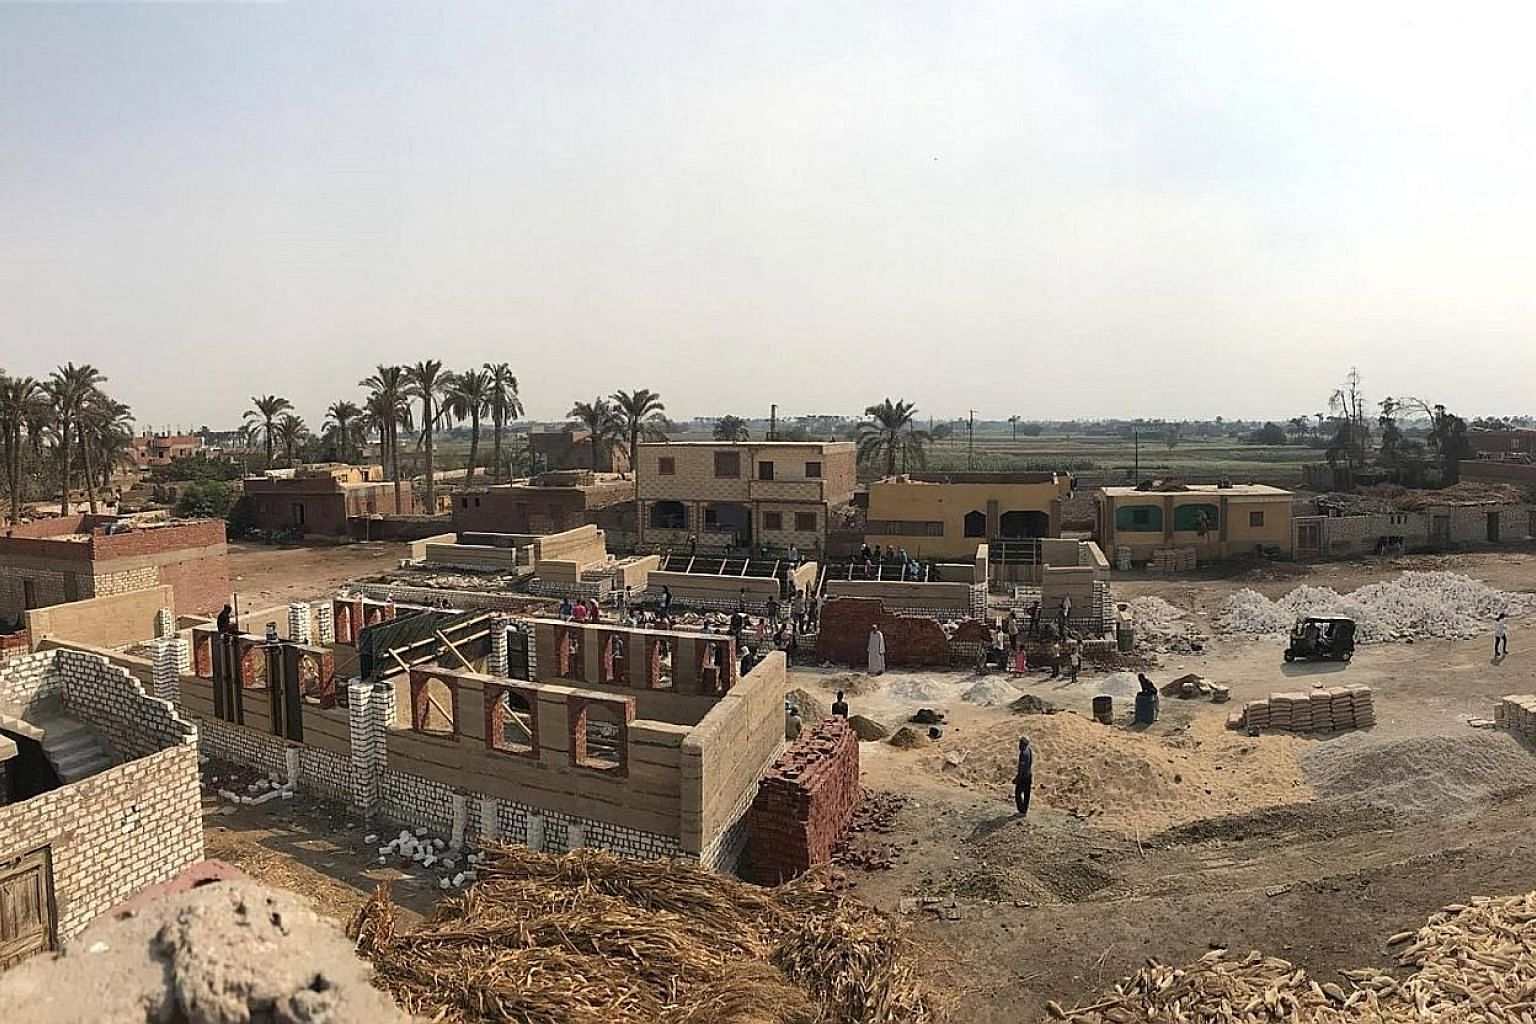 For its third project, social enterprise Hand Over built a school last year for 300 students in Abu Ghadan, a village 80km from Cairo.